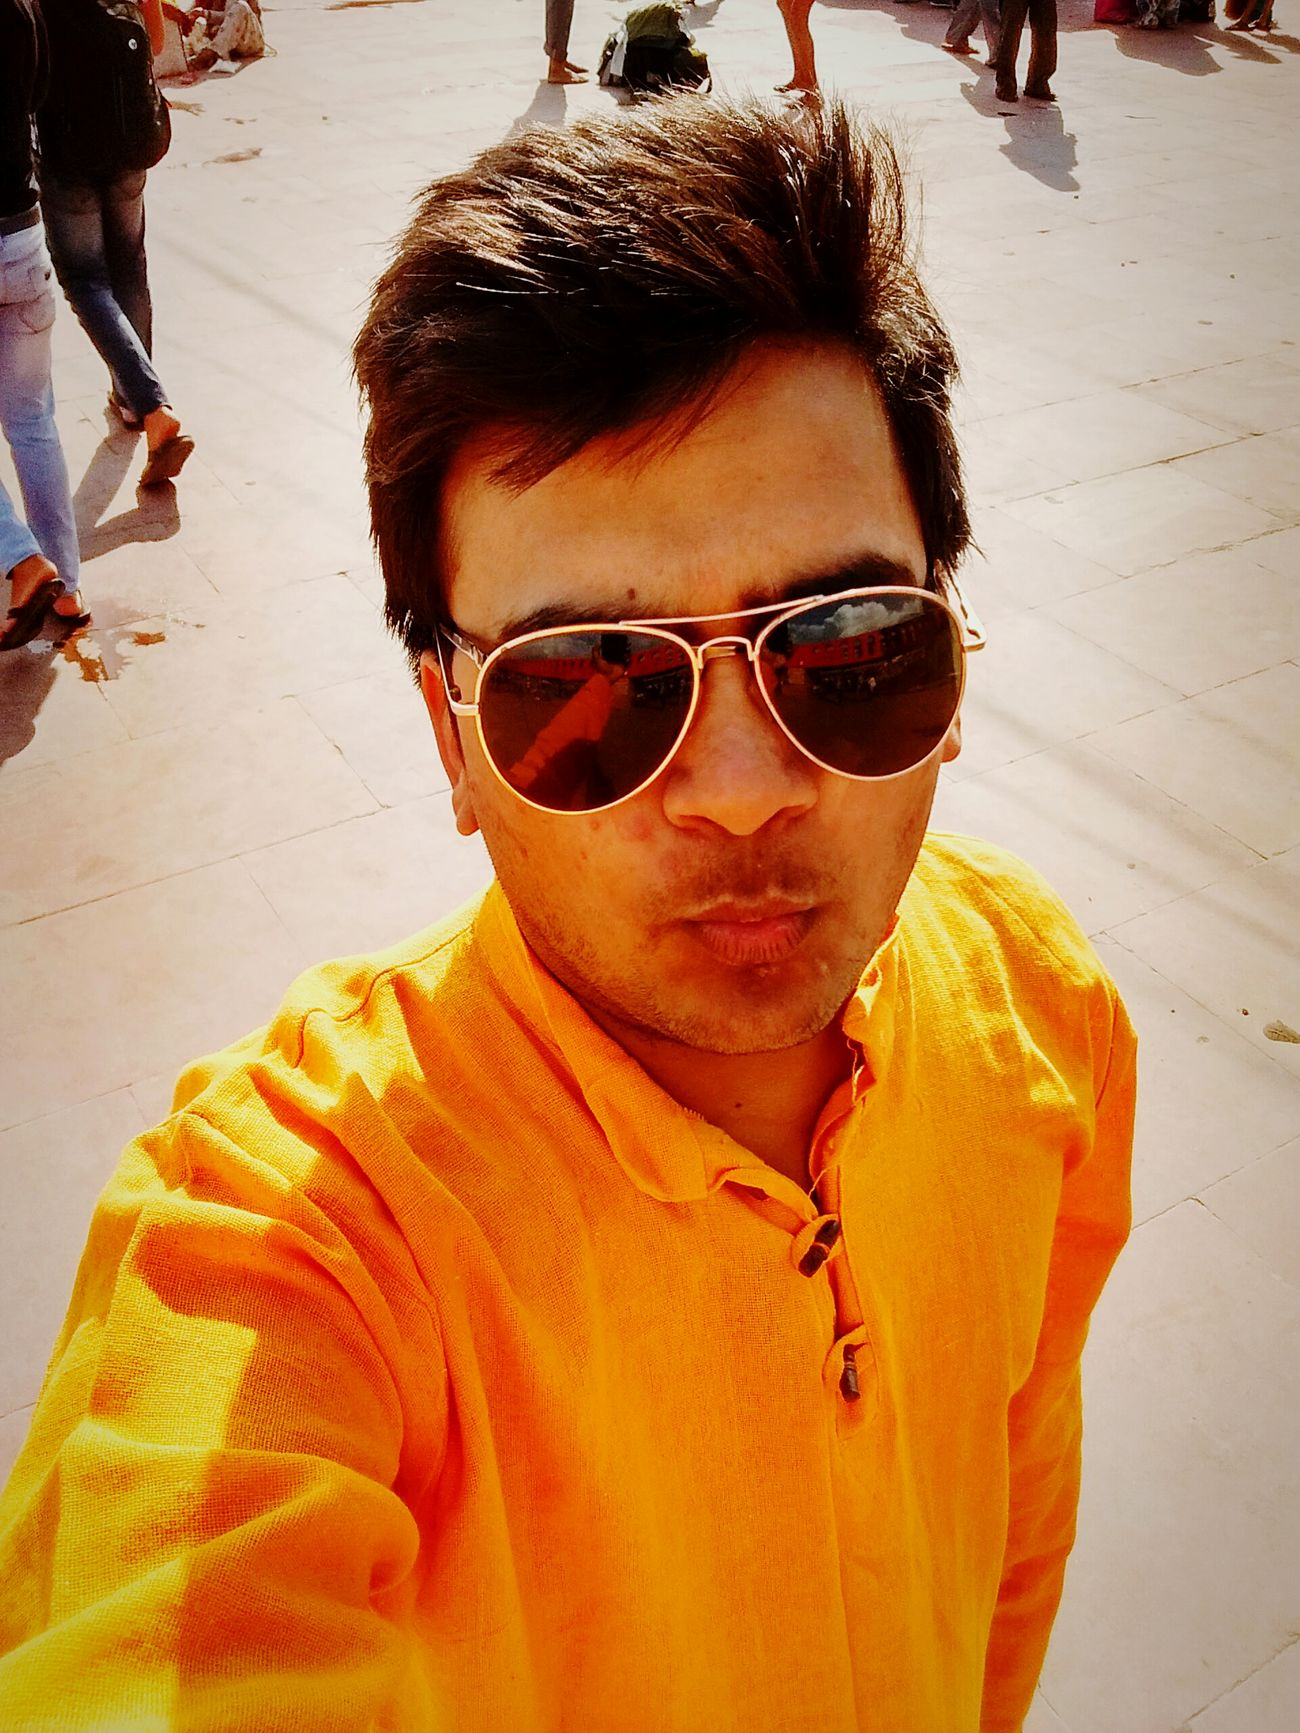 Kurta Sunglasses Sunlight Casual Clothing Summer Outdoors haridwar Rishikesh River Ganga Faces Of Summer Sunlight Sunny Day Sunglasses ✌👌 Lifestyles Leisure Activity Incidental People Beach Sand Sunlight Sunglasses Casual Clothing Vacations Young Adult Front View Looking At Camera Person